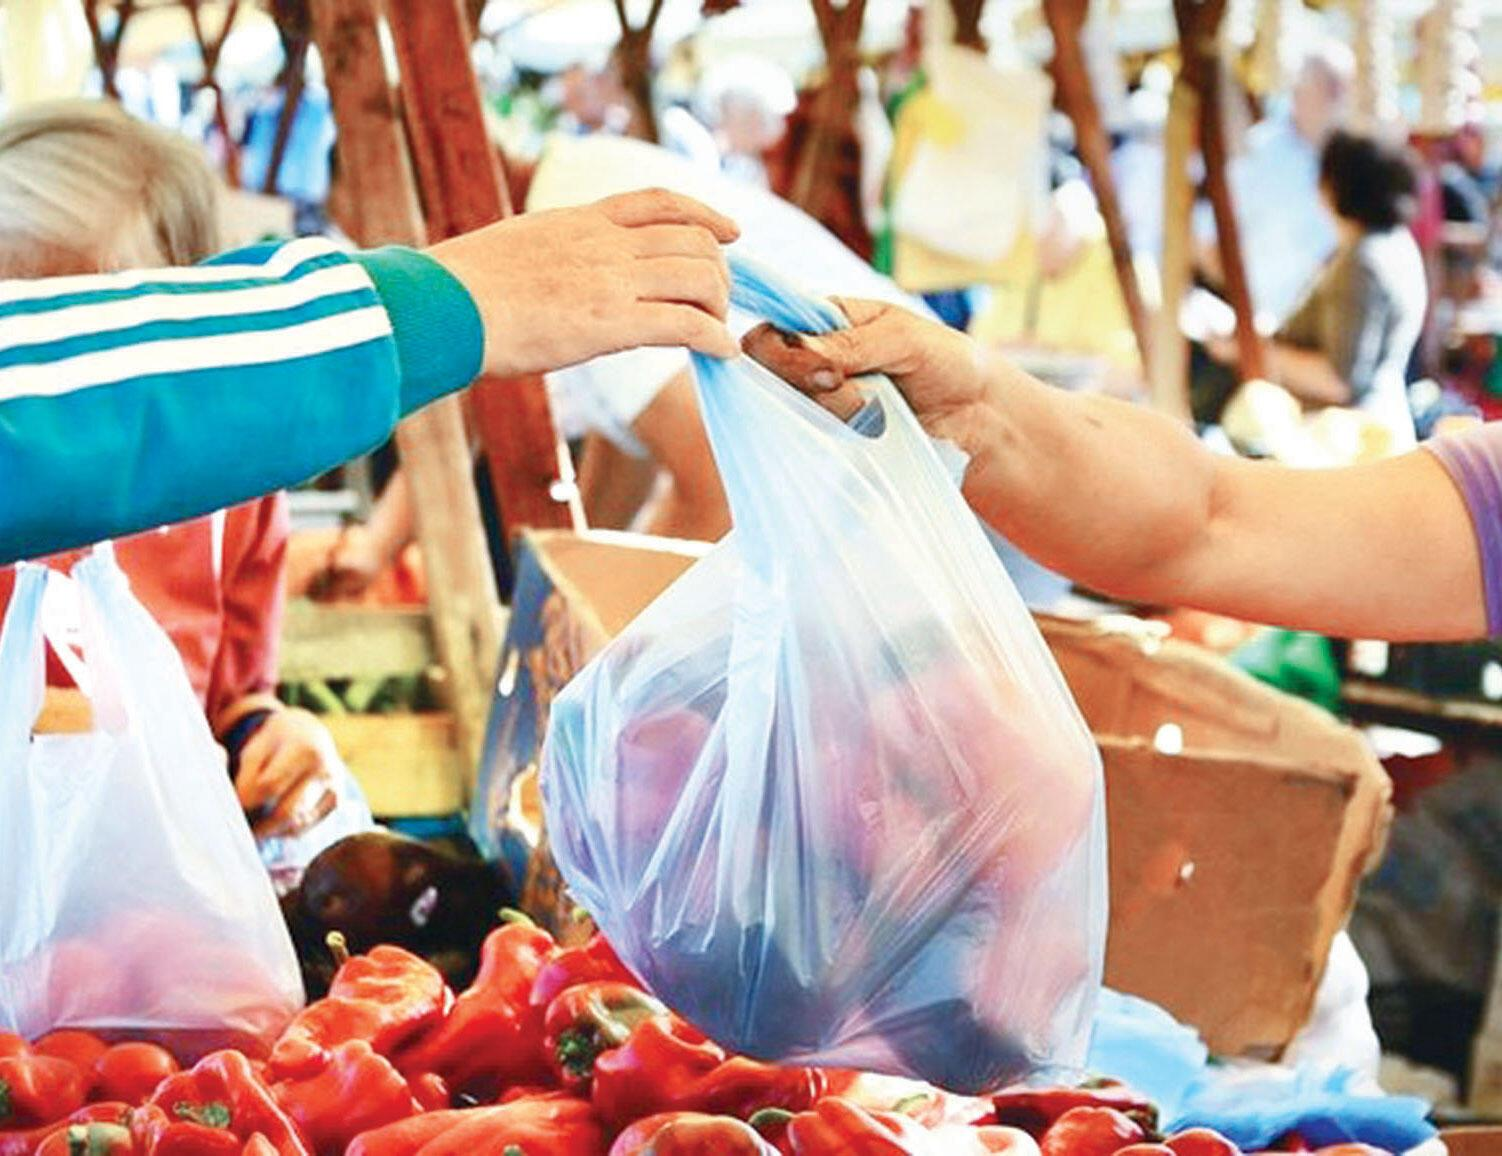 Draft Law Suggests Ban On Free Plastic Bags In Turkey